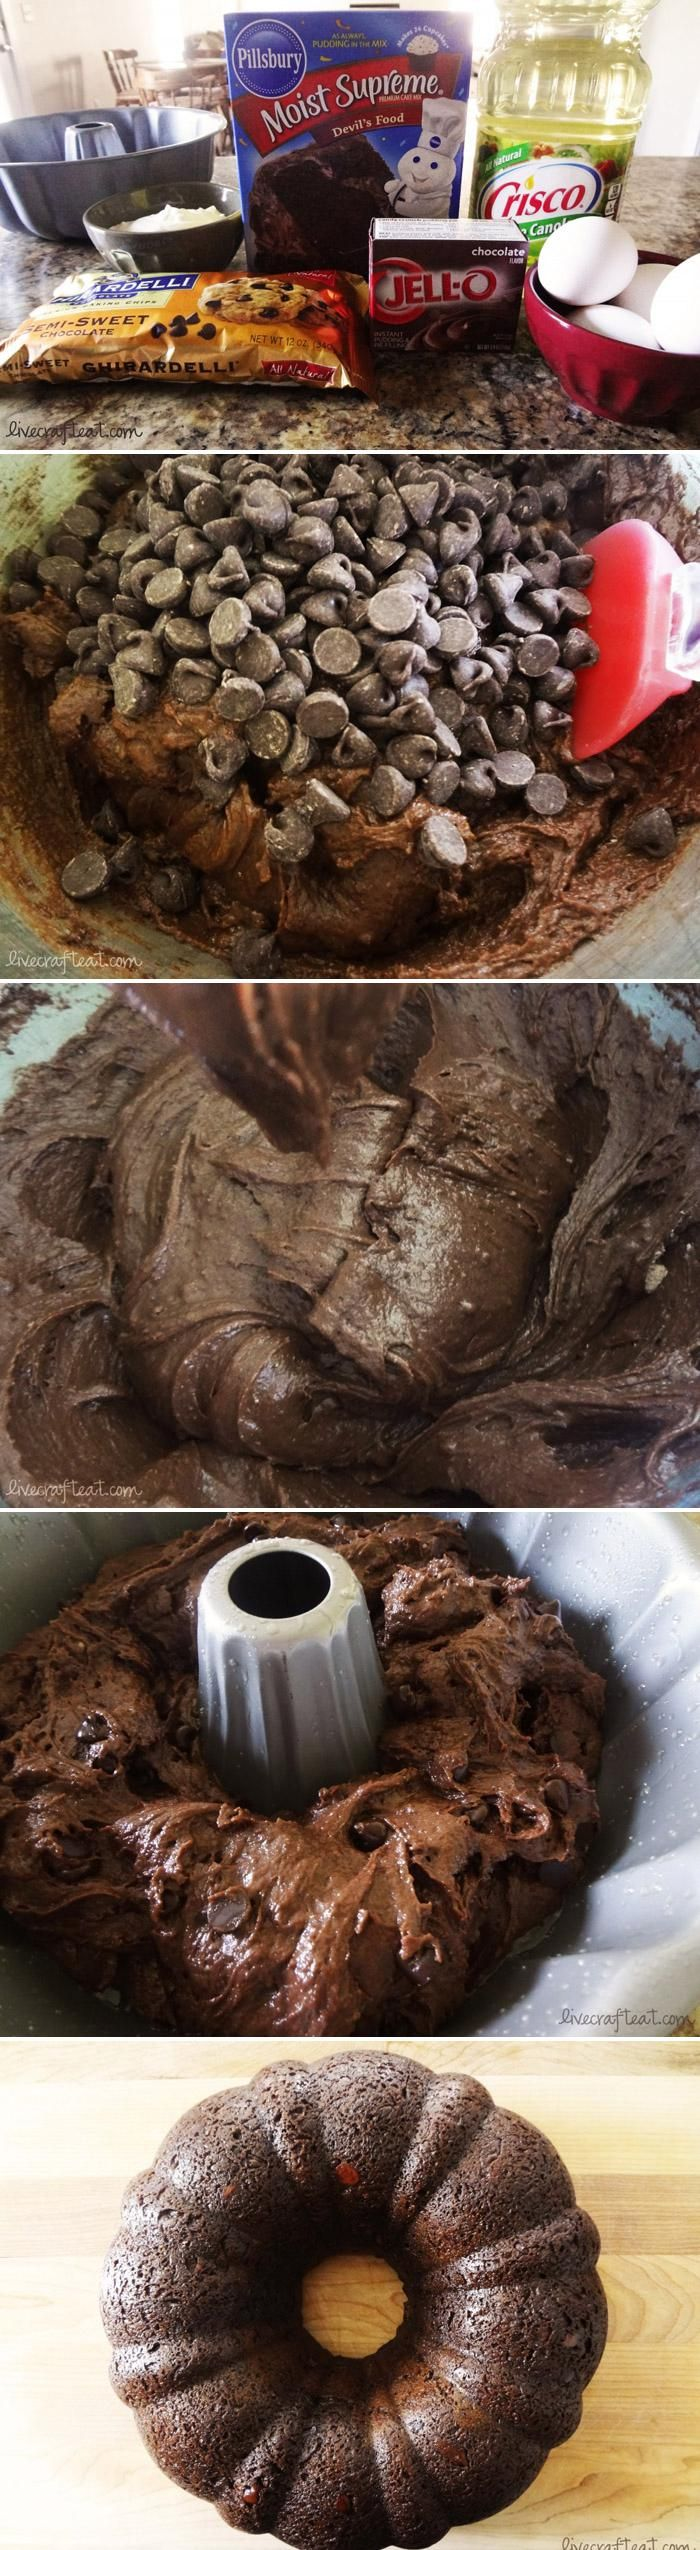 Talking while eating is rude. Mind your manners and have some chocolate bundt…